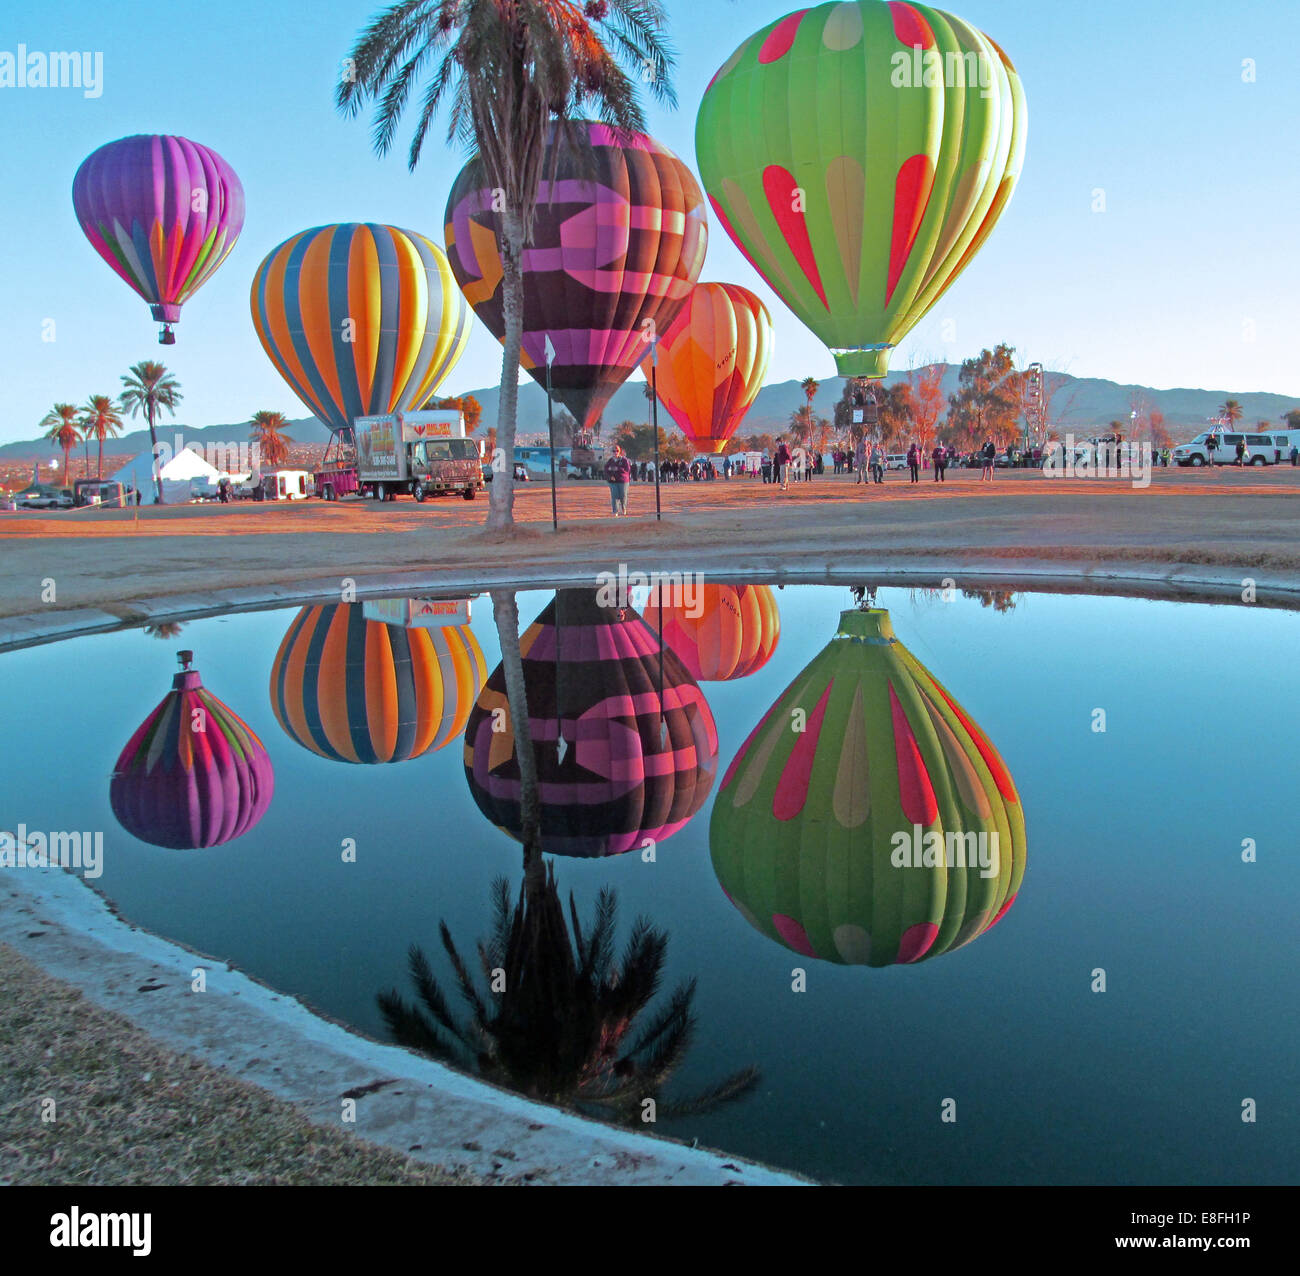 Ee.Uu., Arizona, Mohave County, Lake Havasu City, Beachcomber Boulevard, Lake Havasu, Lake Havasu Festival de globos, Imagen De Stock